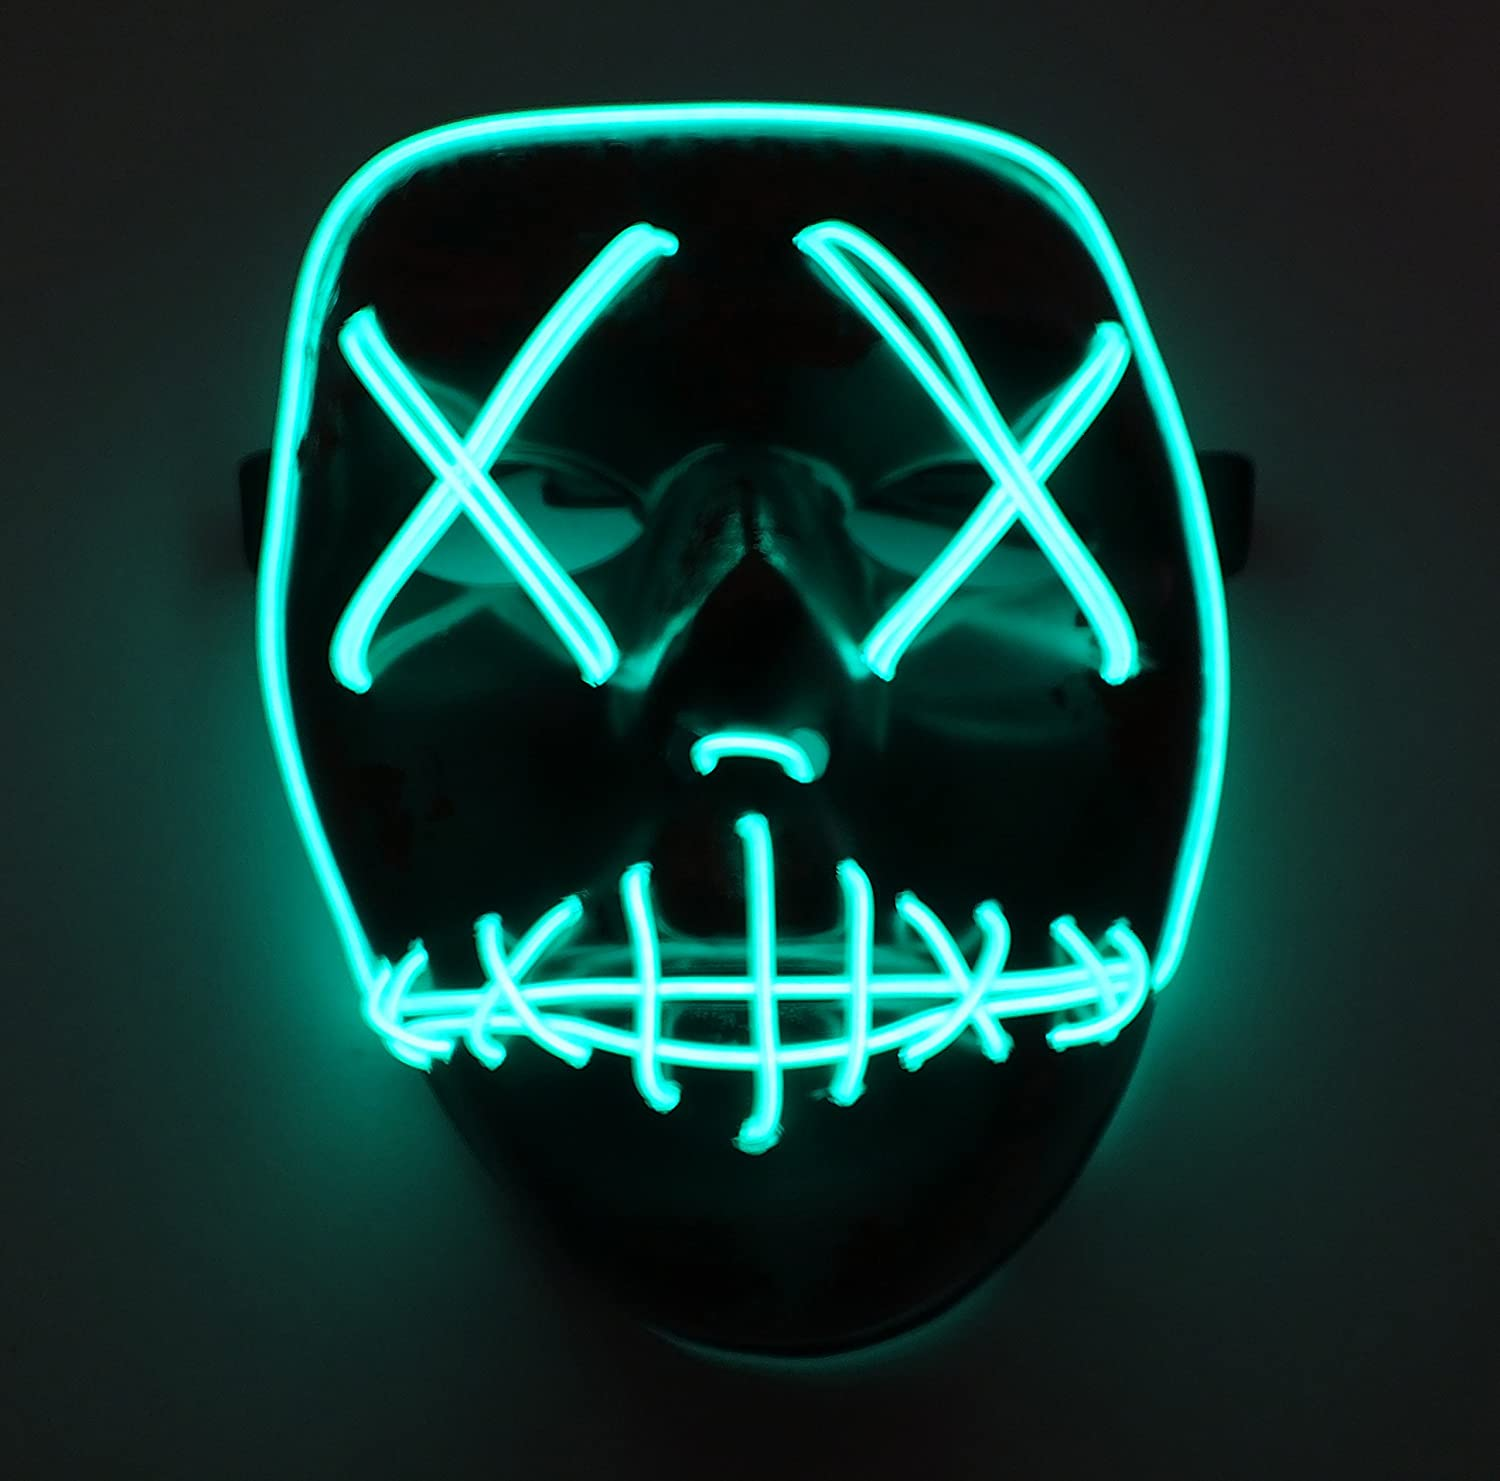 The Purge Election Year LED Light Up Mask Festival Halloween Costume by  ASVP Shop Amazon.co.uk Clothing